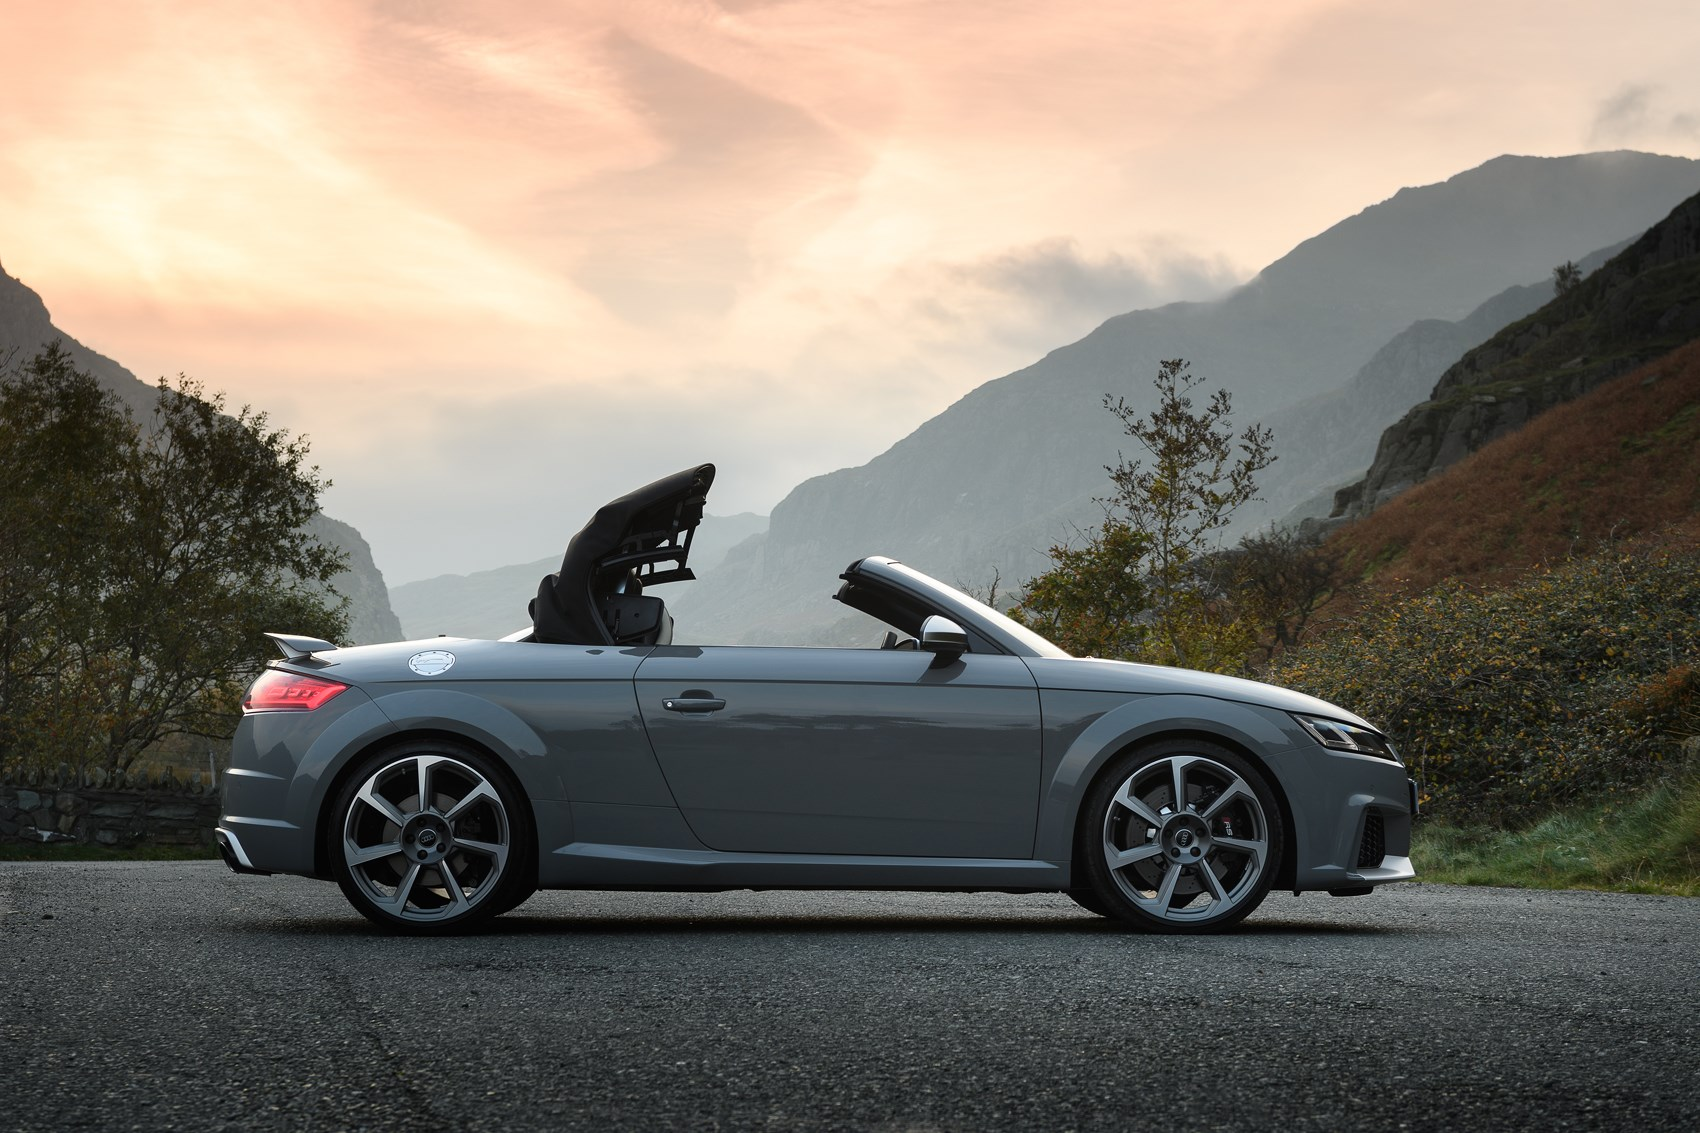 audi tt rs roadster review 2016 parkers. Black Bedroom Furniture Sets. Home Design Ideas